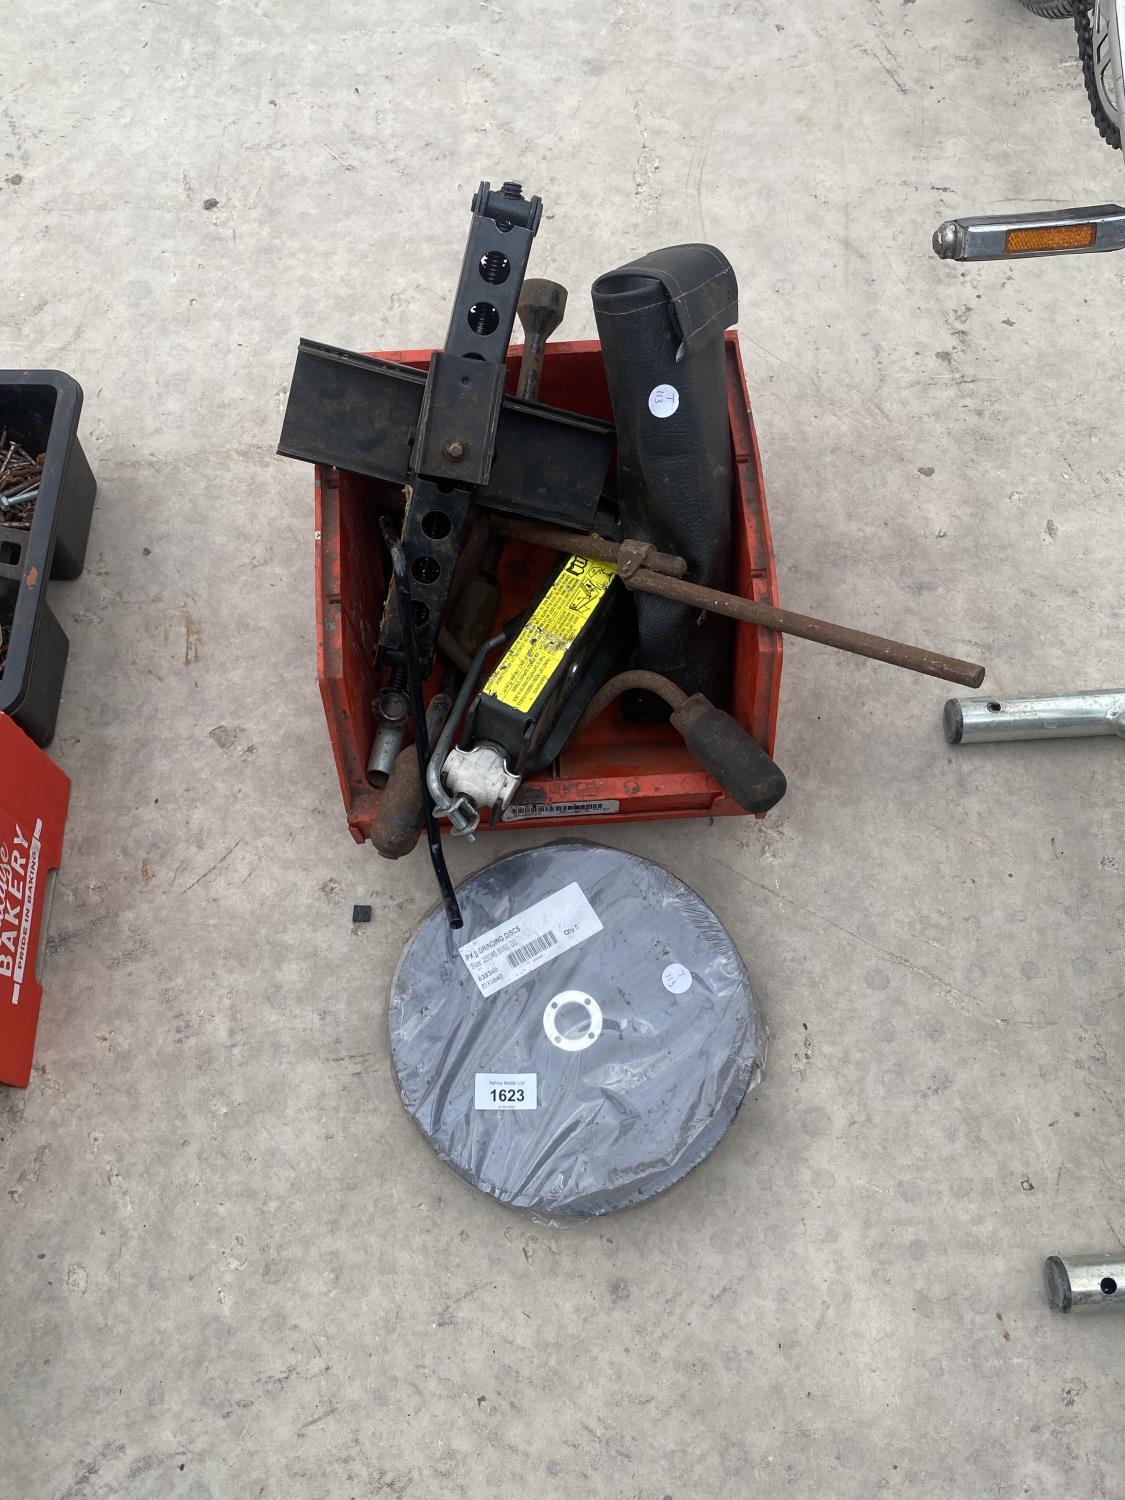 CAR TROLLEY JACKS AND AN ASSORTMENT OF CUTTING DISCS - Image 2 of 2